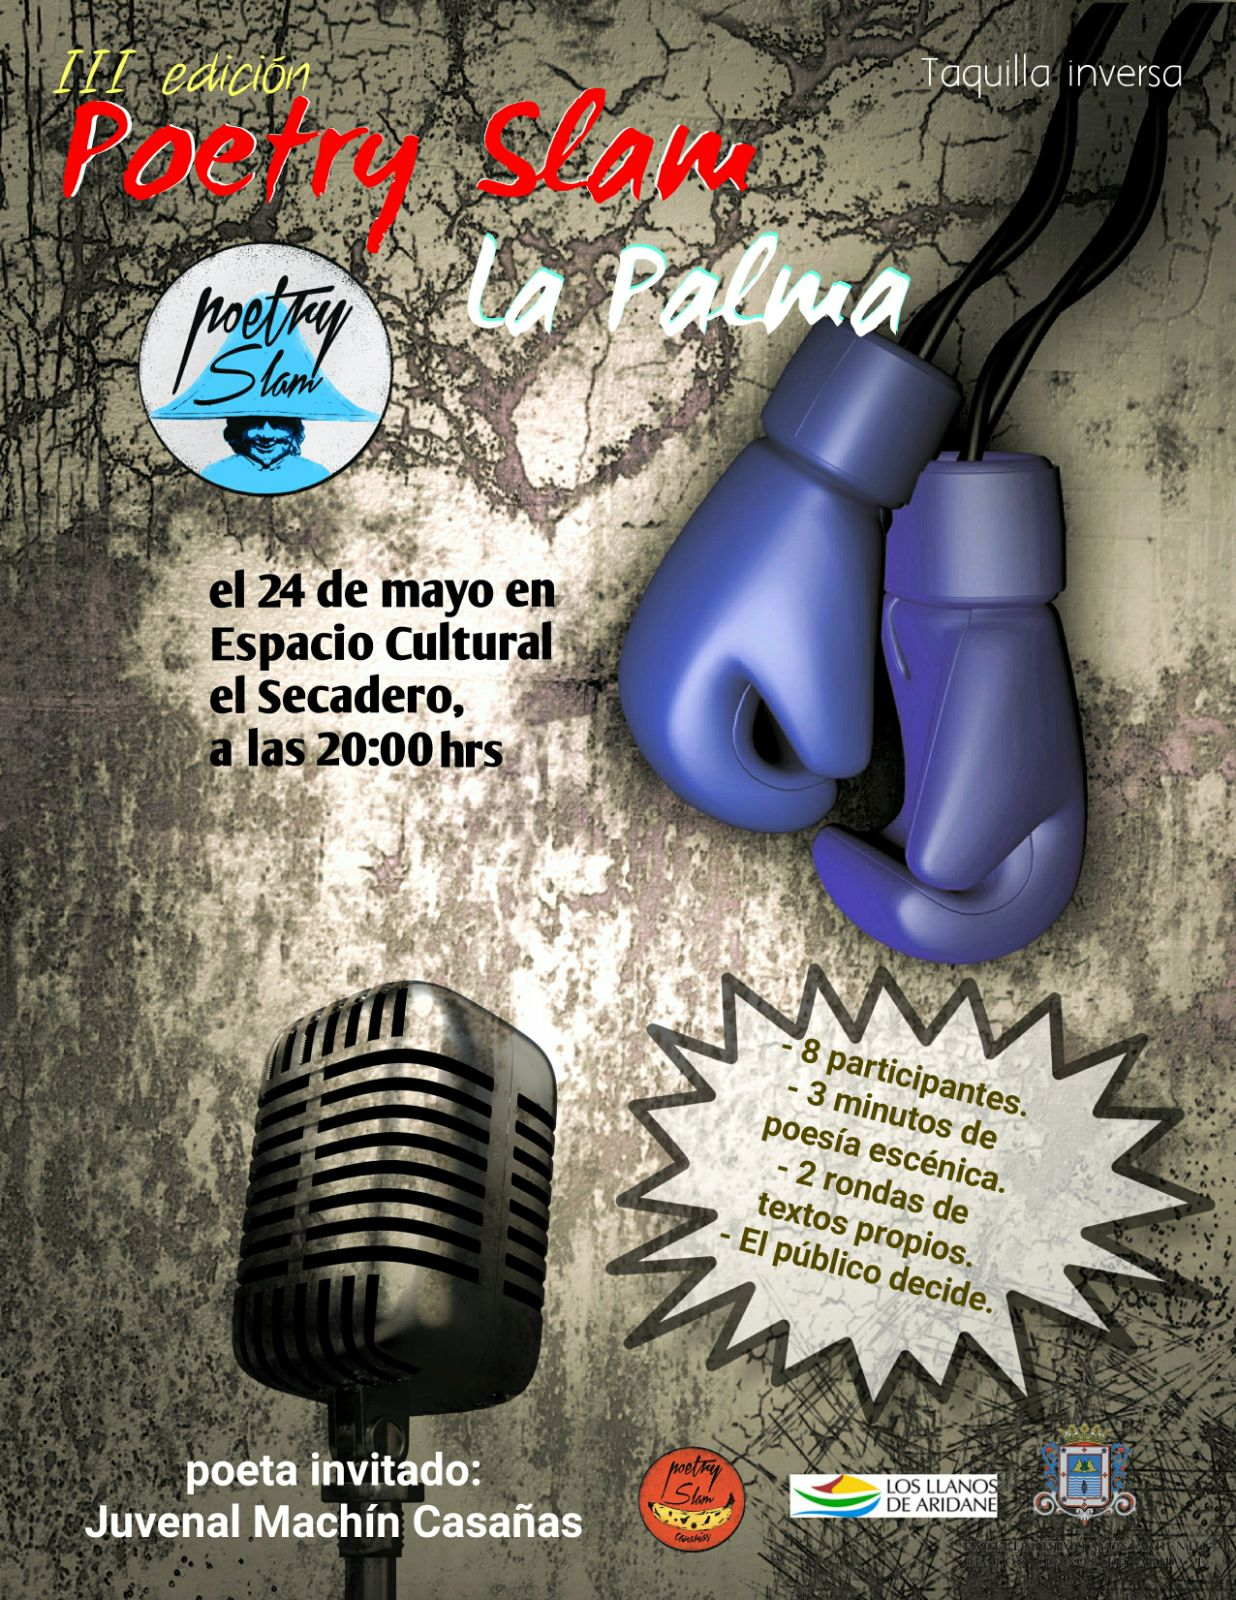 III Edición Poetry Slam